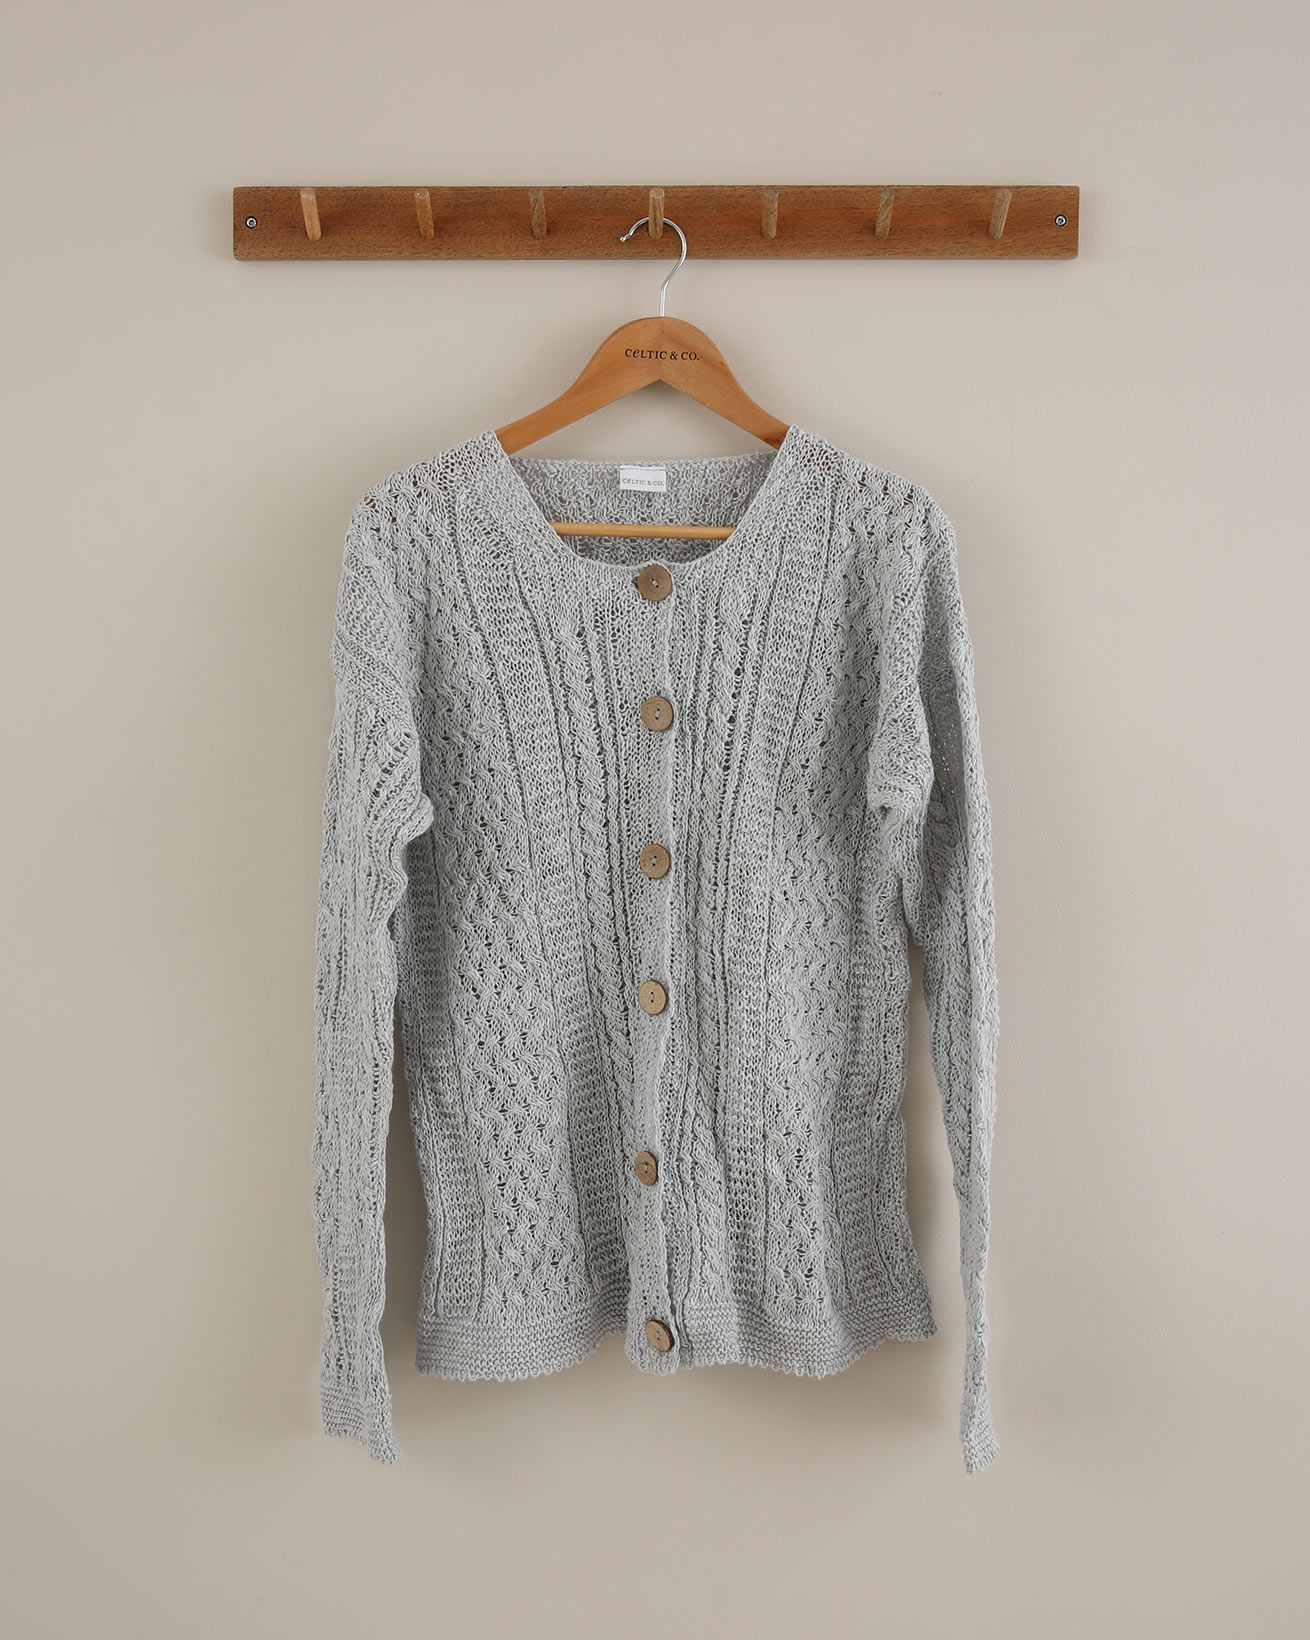 Linen Cotton Cable Cardigan - Small - Skylight - 1654